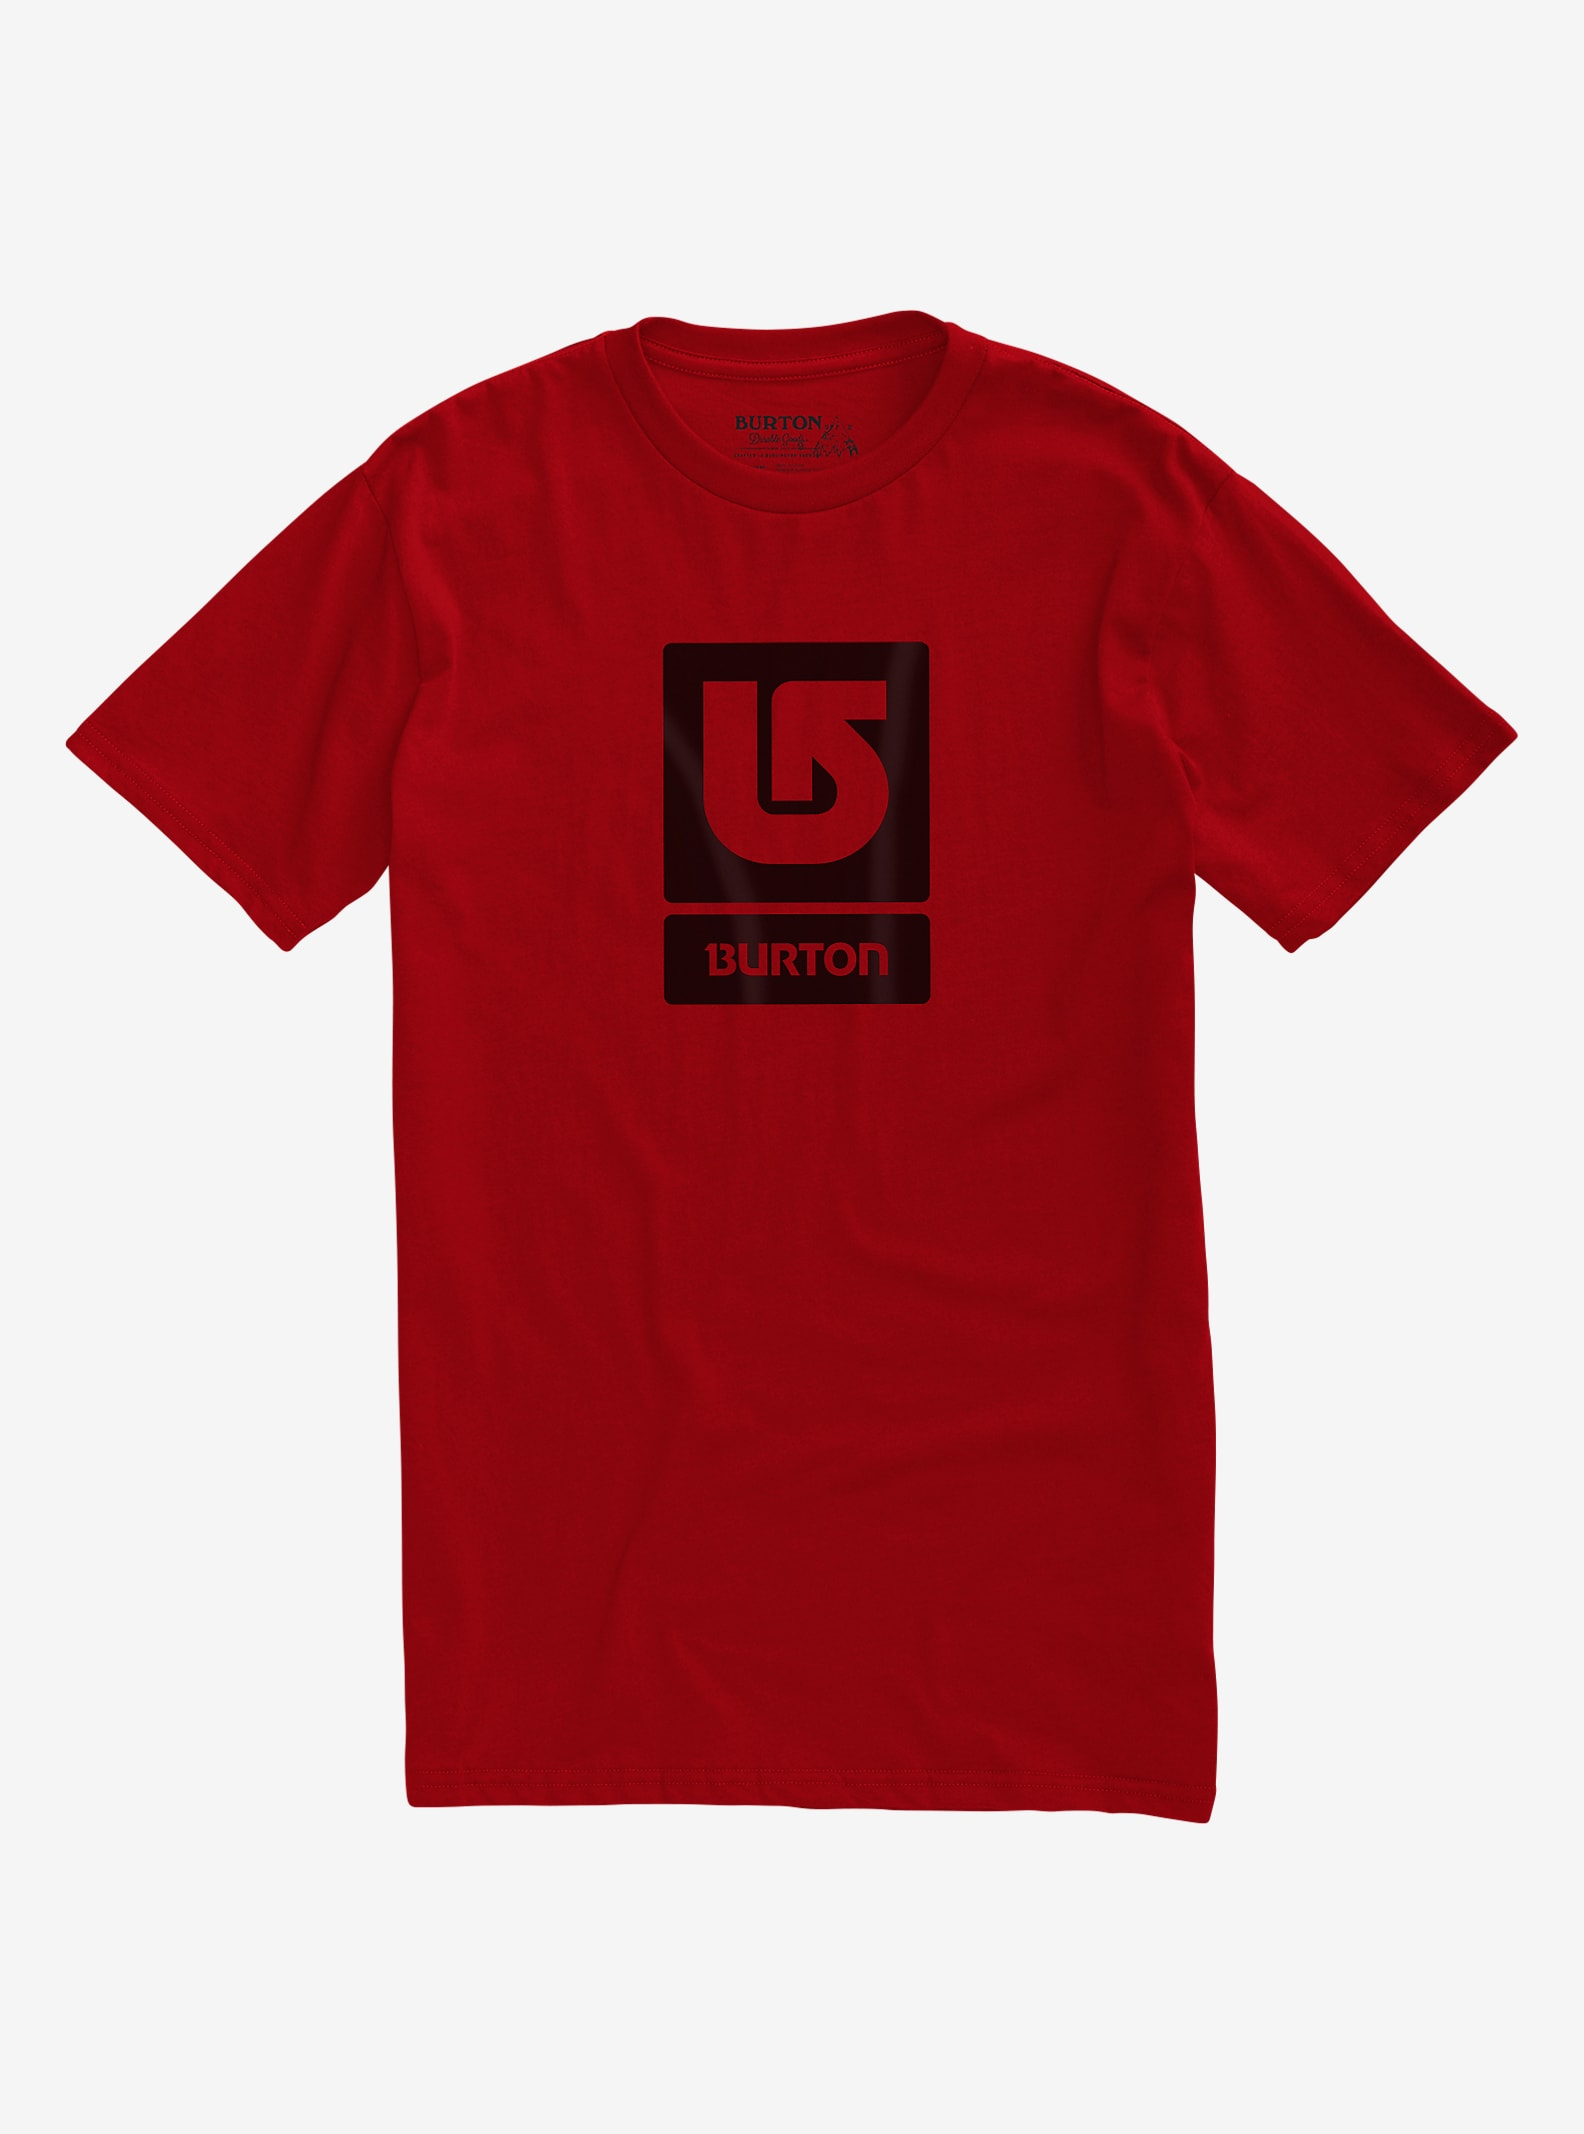 Burton Logo Vertical Fill Short Sleeve T Shirt shown in Process Red